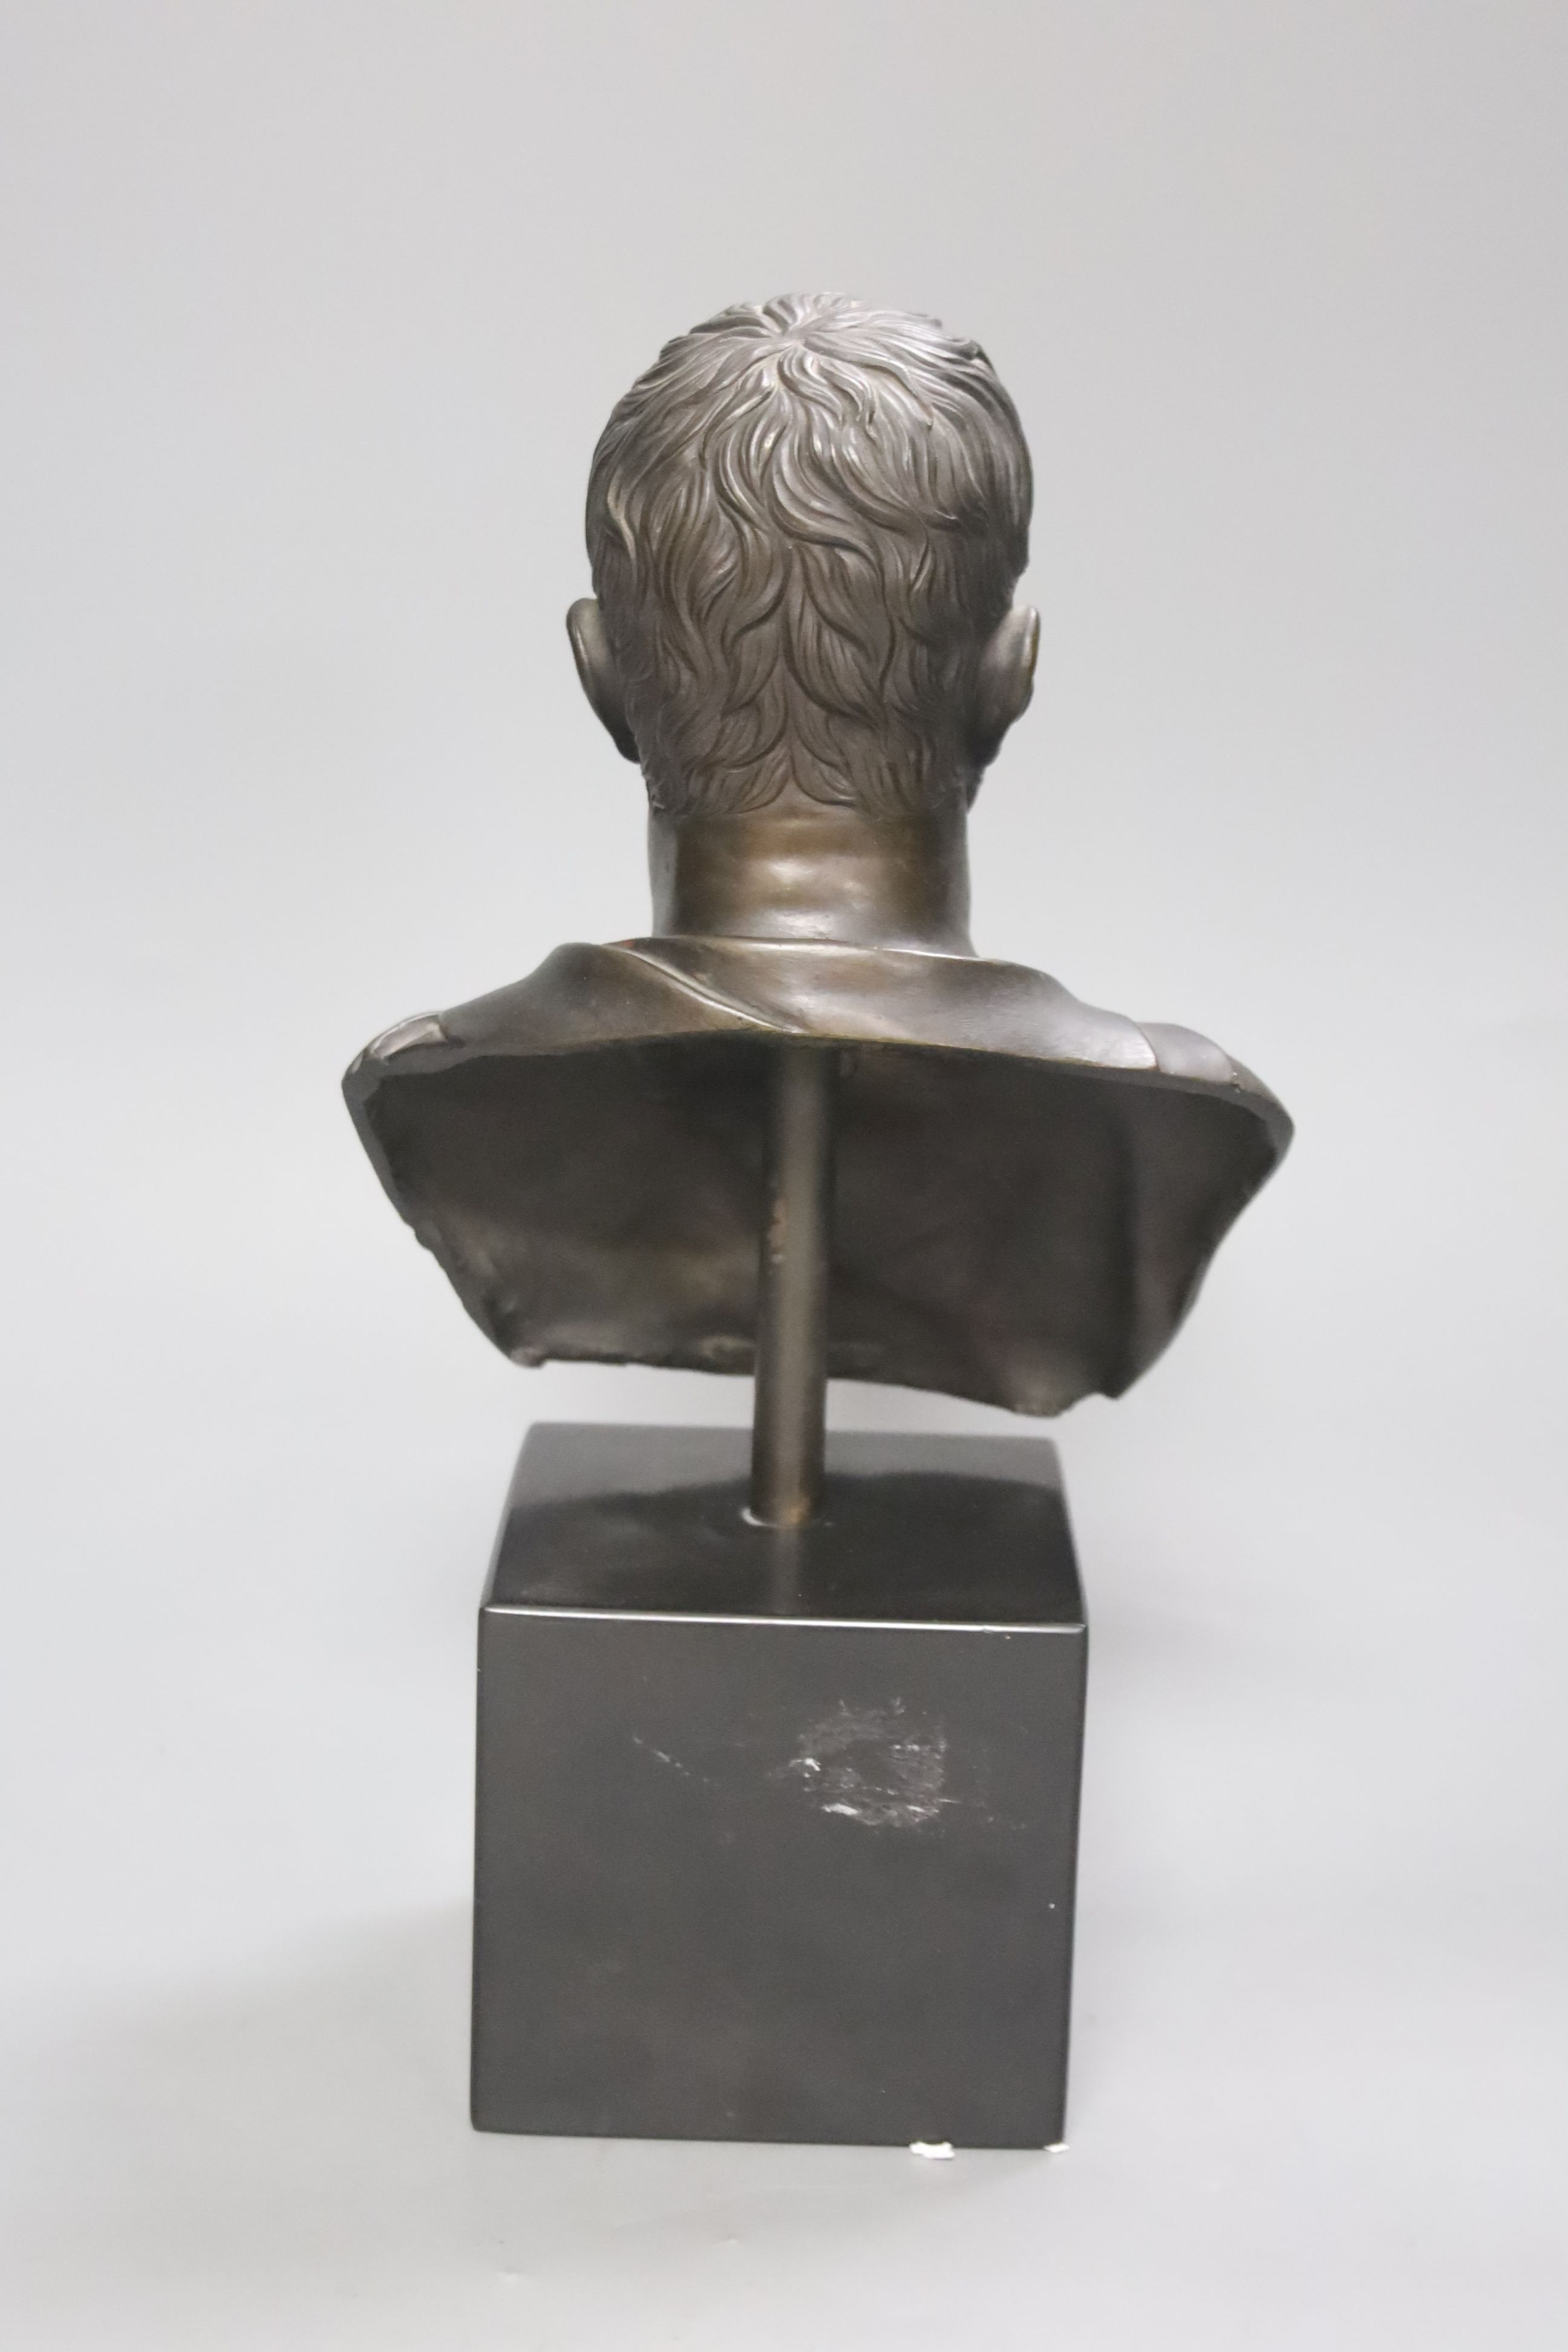 A bronze bust of a Roman Emperor, height 30cm - Image 3 of 3